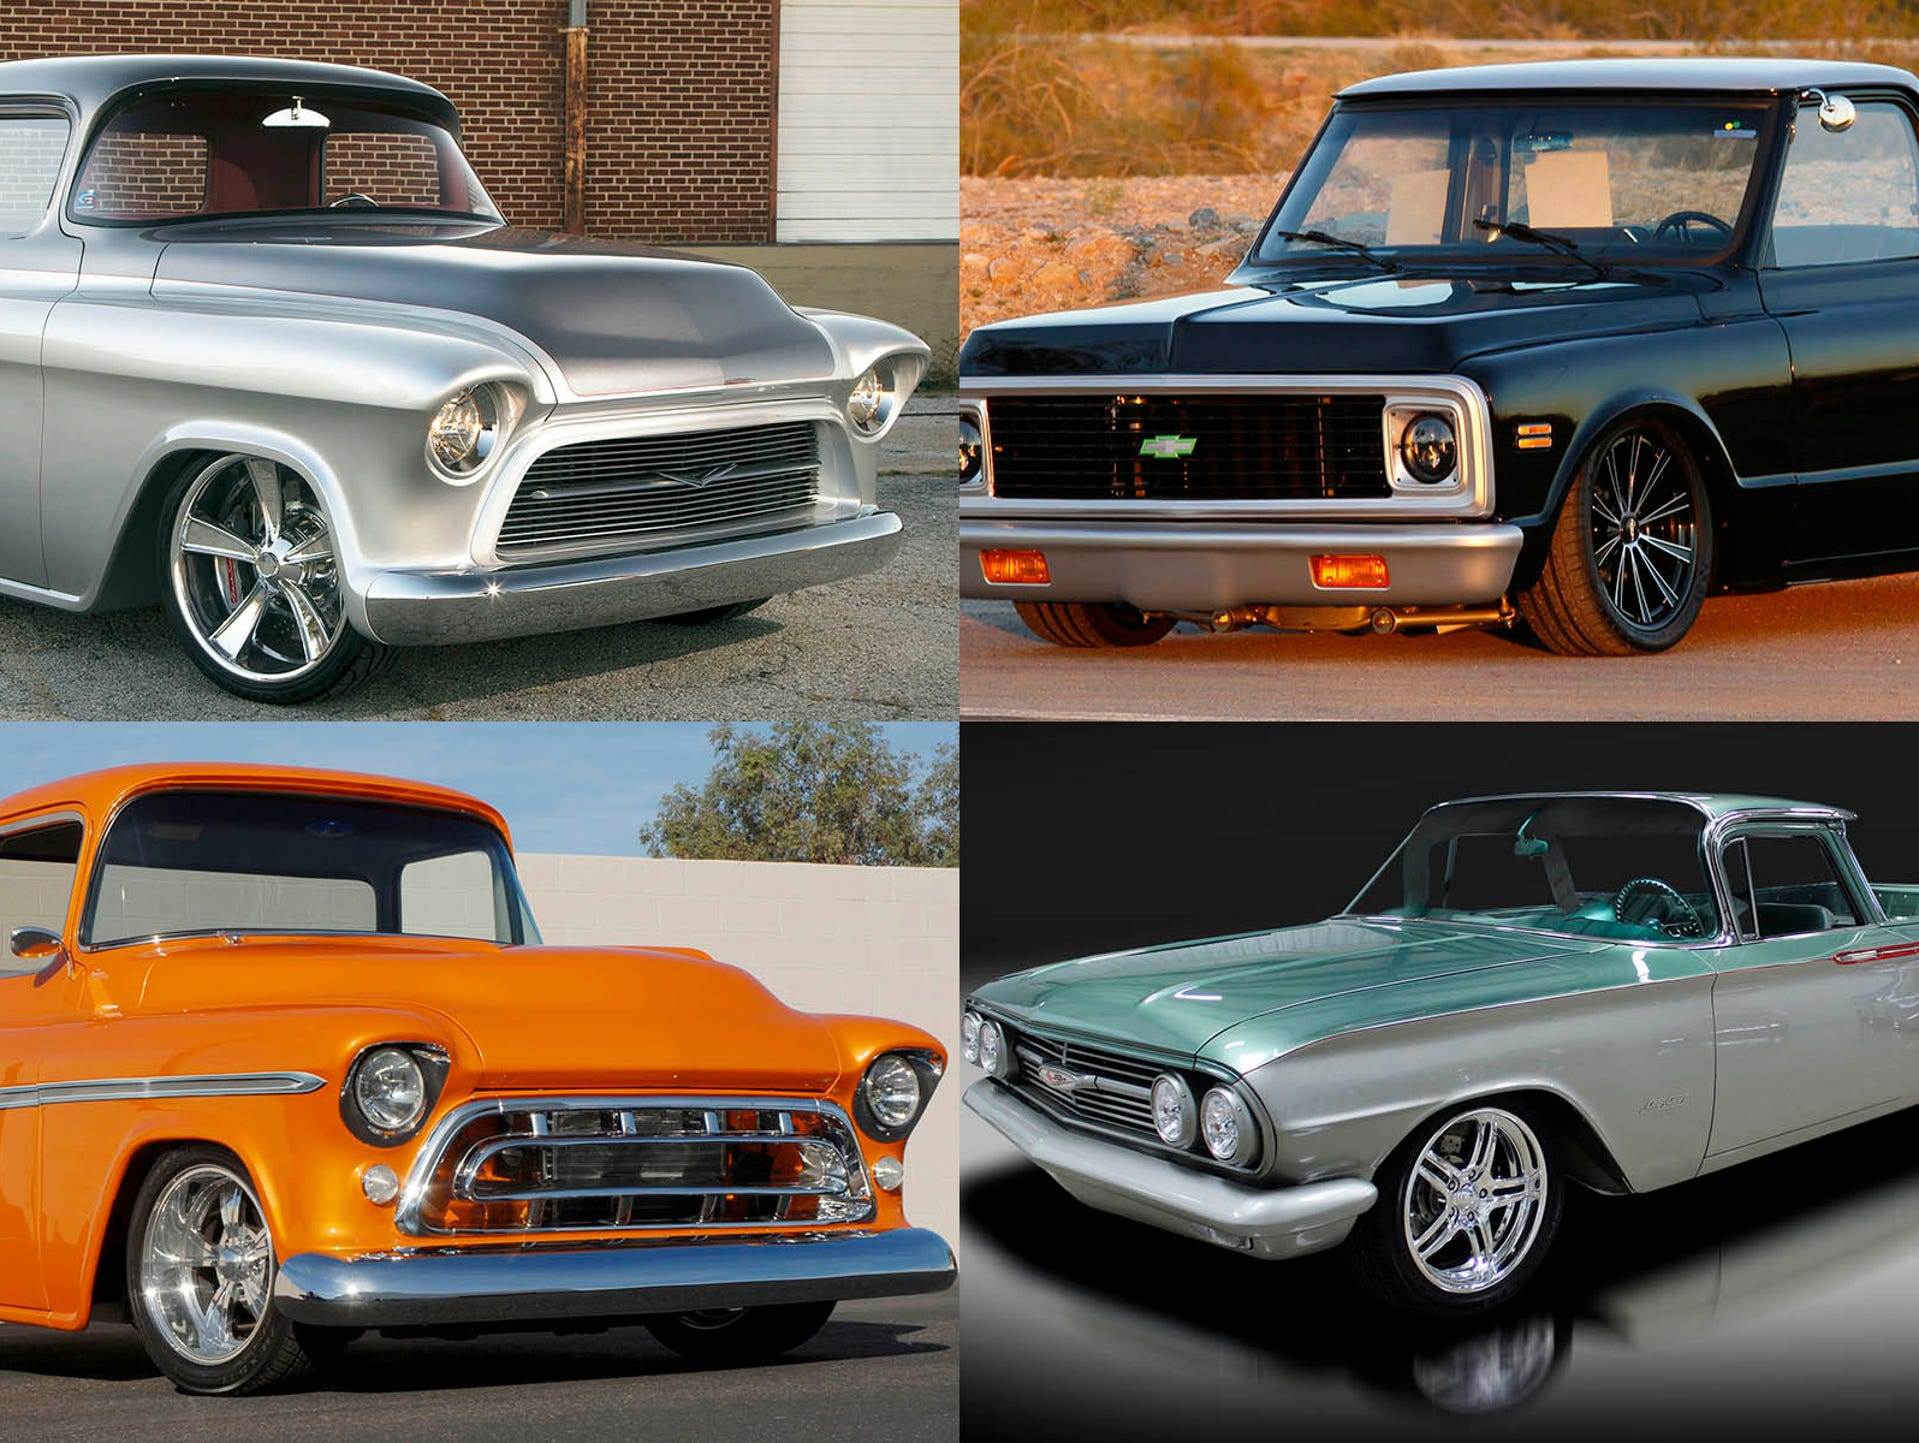 Photos: Vintage Chevy pickups that have been customized